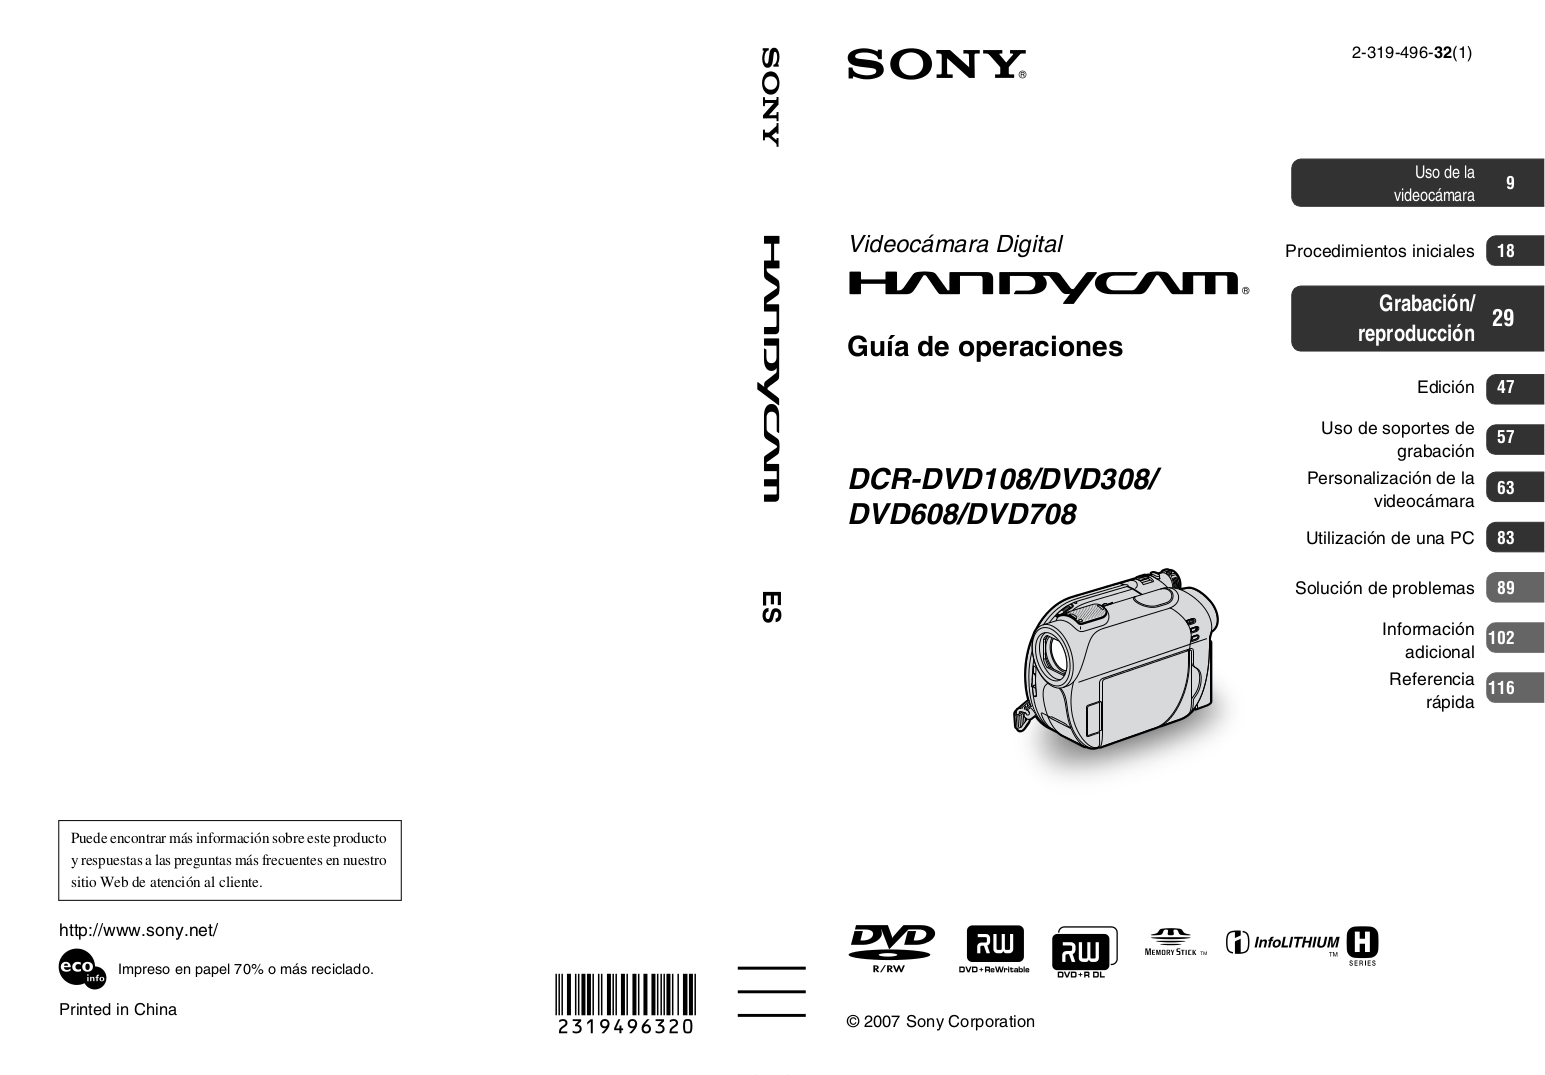 download free pdf for sony handycam dcr dvd108 camcorders manual rh umlib com camara sony dcr-dvd108 manual sony dcr-dvd108 specs